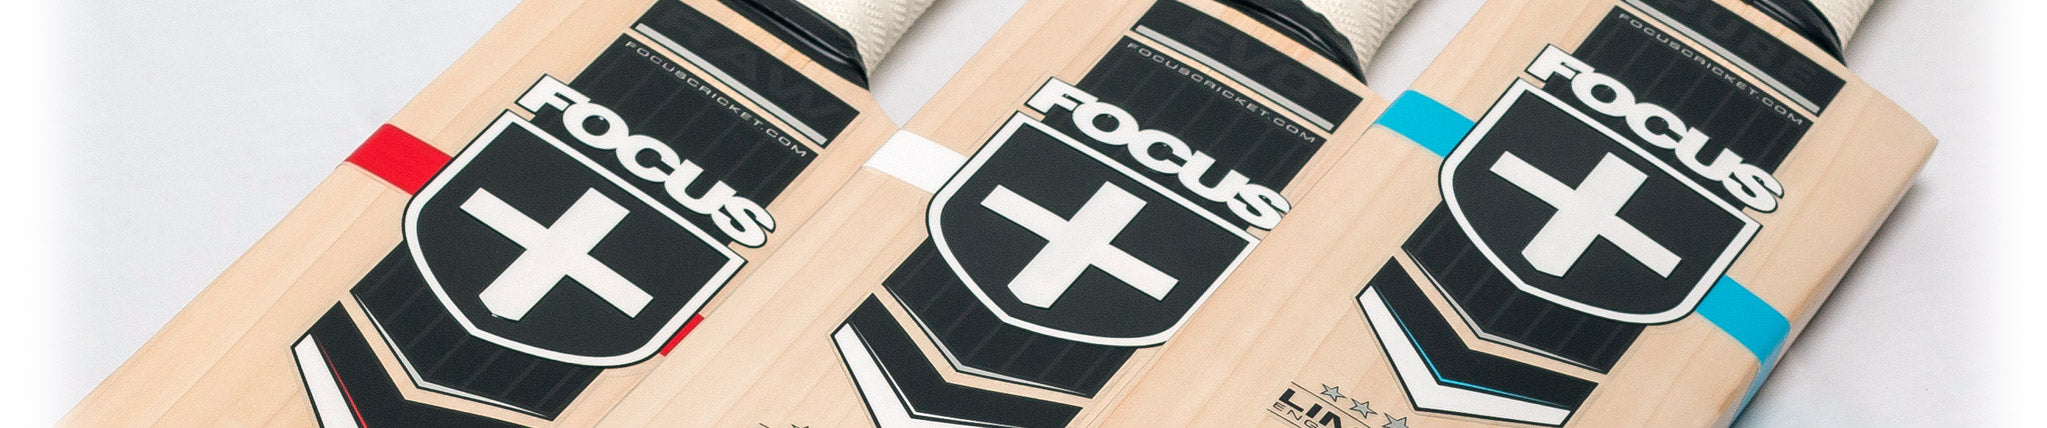 Focus Cricket - Handmade Australian cricket bats, cricket gloves, cricket pads, cricket bags and cricket gear